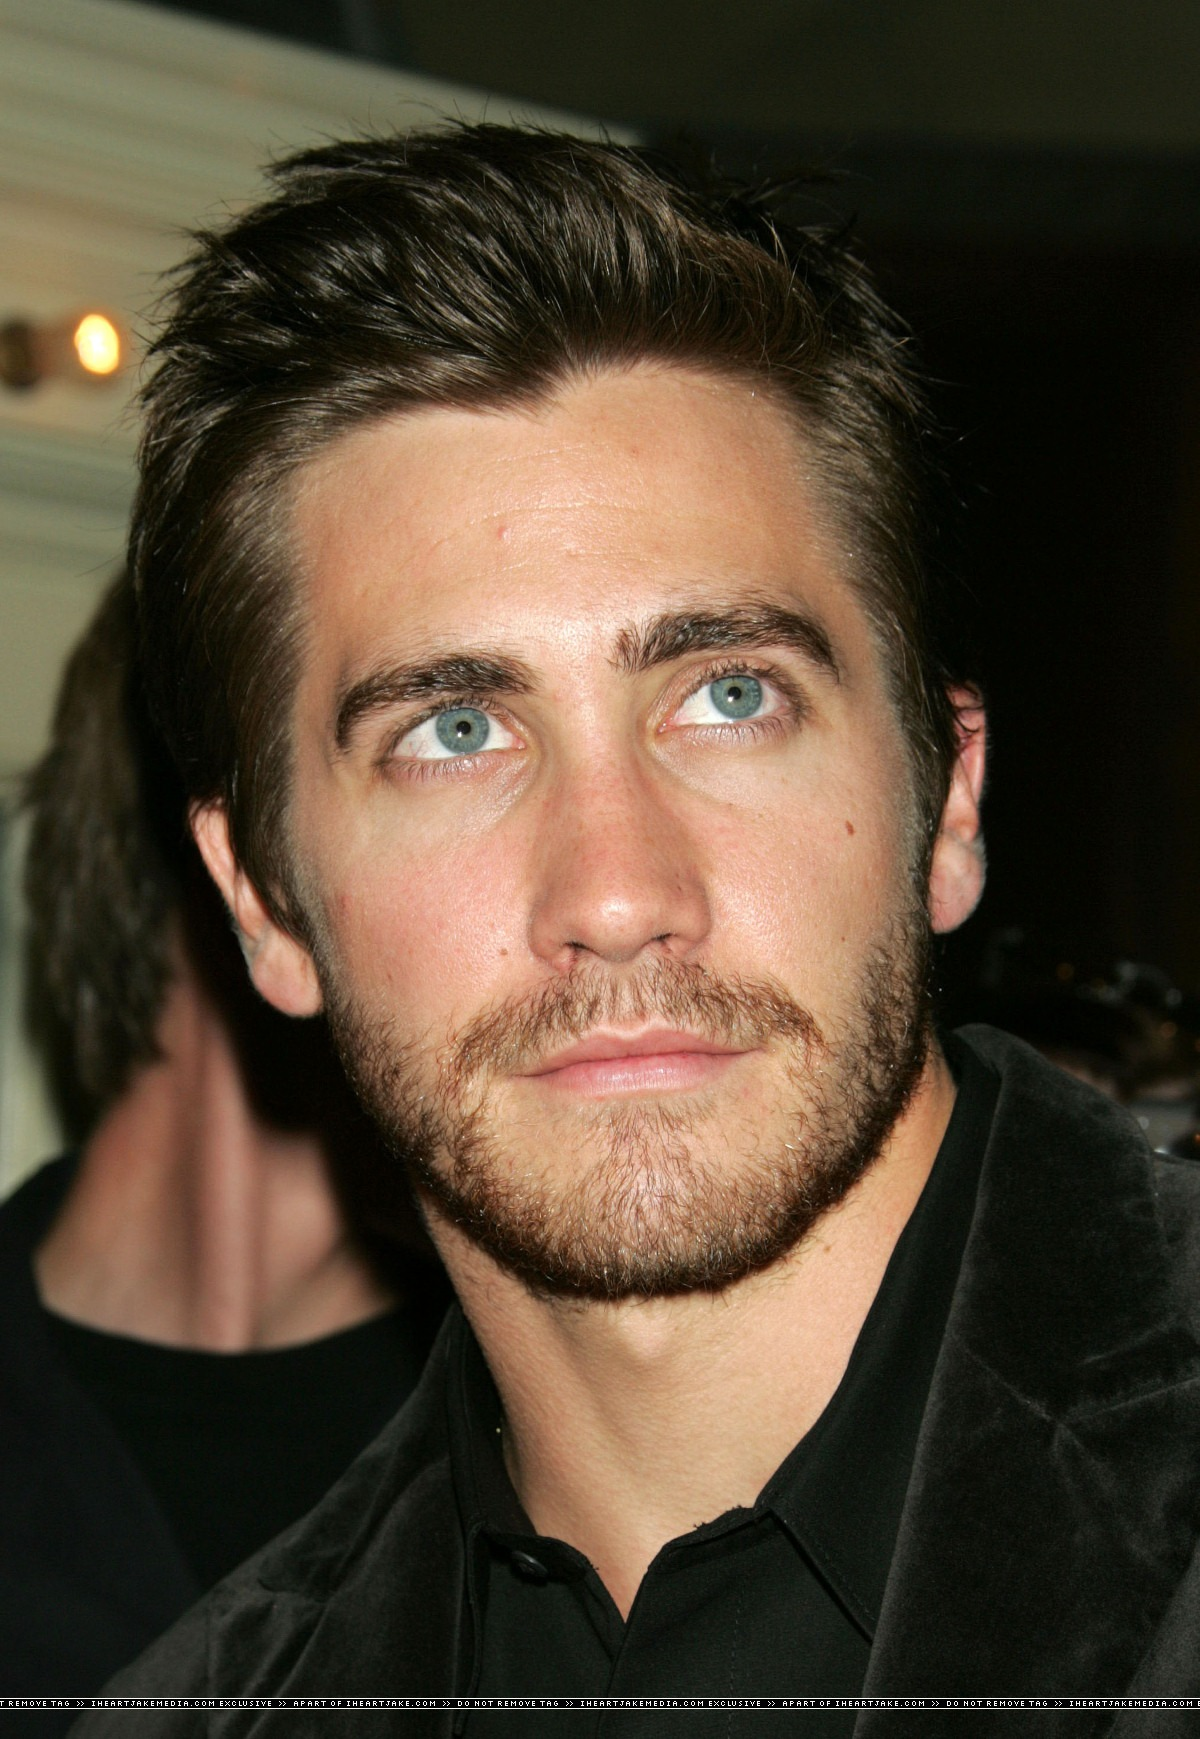 Jake Gyllenhaal - Jake Gyllenhaal Photo (27153973) - Fanpop Jake Gyllenhaal